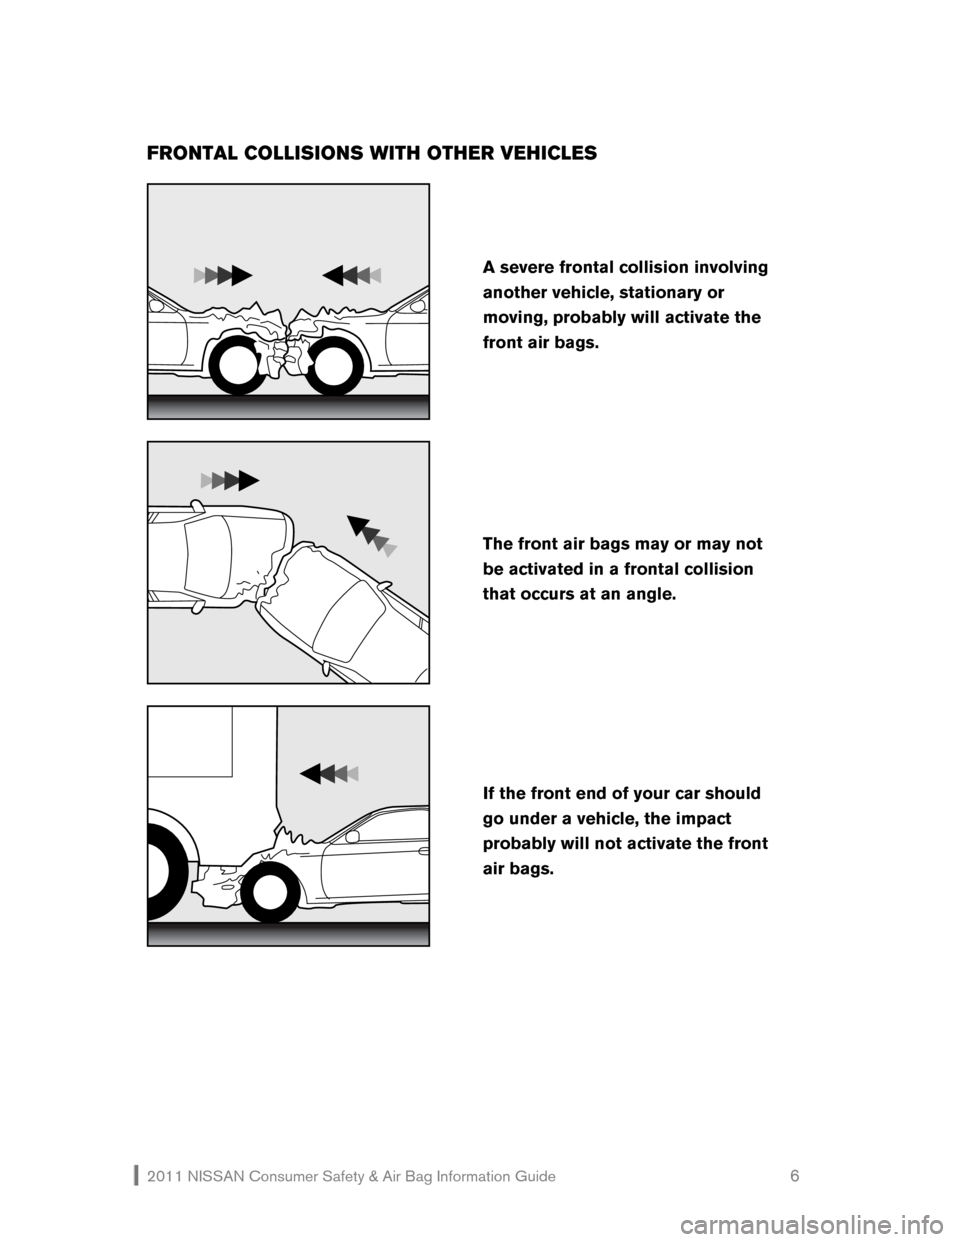 NISSAN ROGUE 2011 1.G Consumer Safety Air Bag Information Guide, Page 7